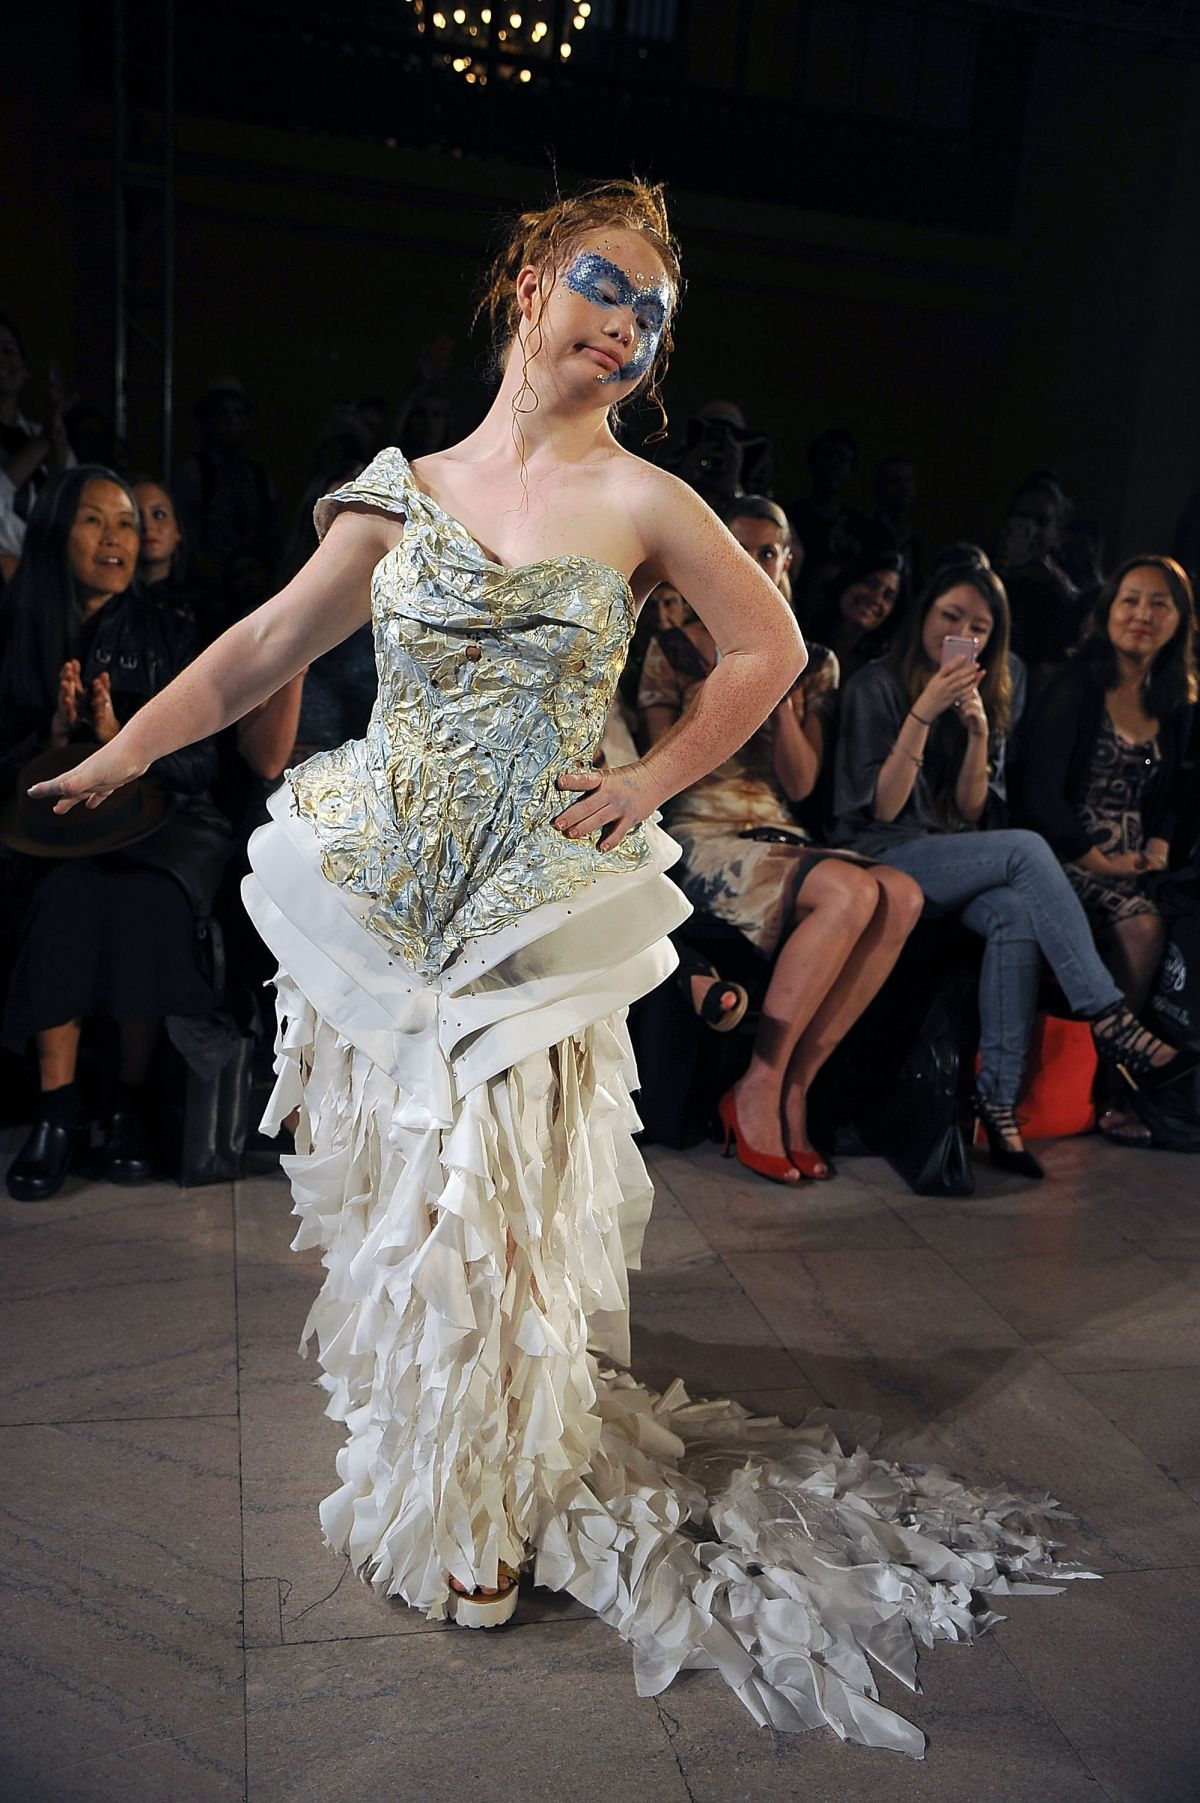 Down s Syndrome model Madeline Stuart wows New York Fashion Week ... f8596a9719b6